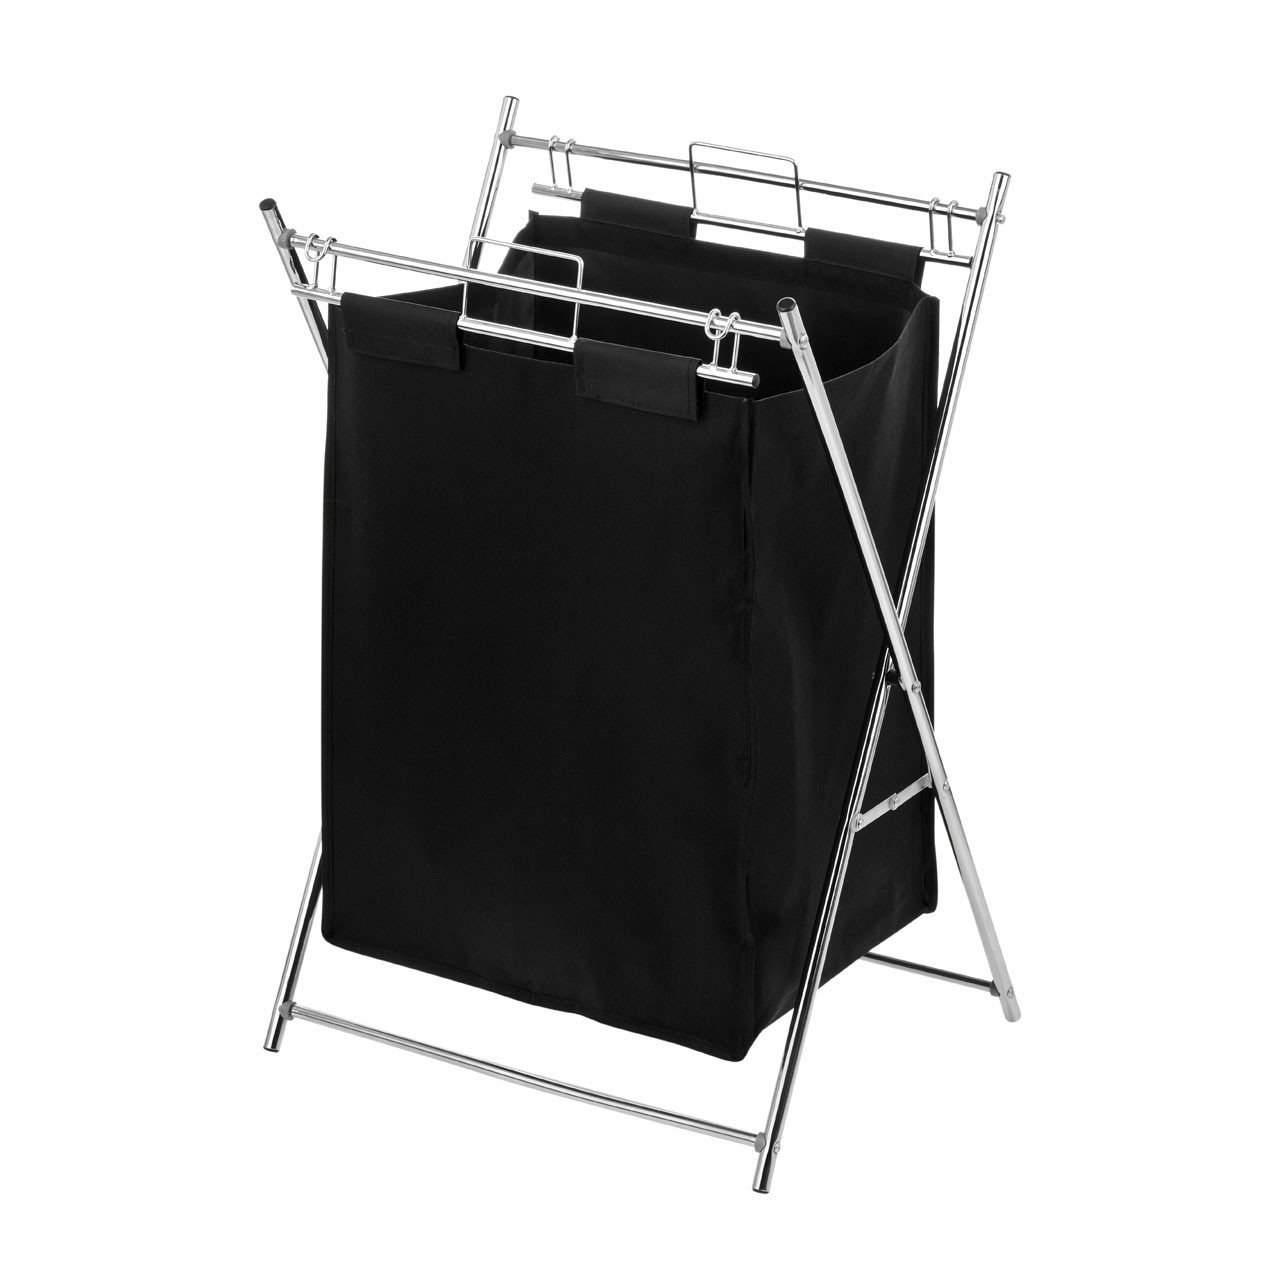 Laundry Bag with Chrome Frame - Black